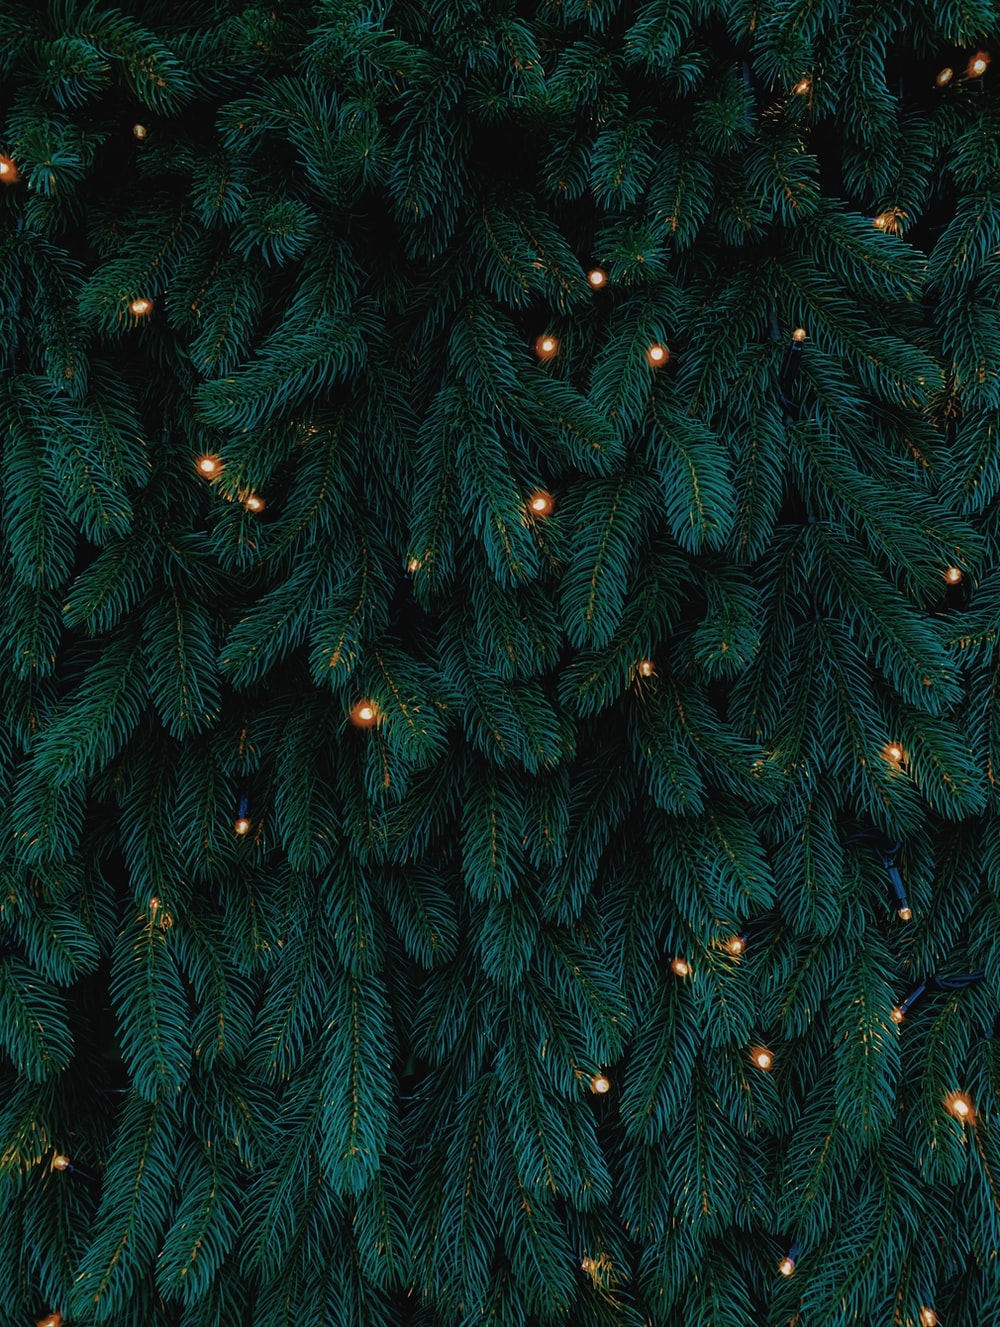 green Christmas tree with lights